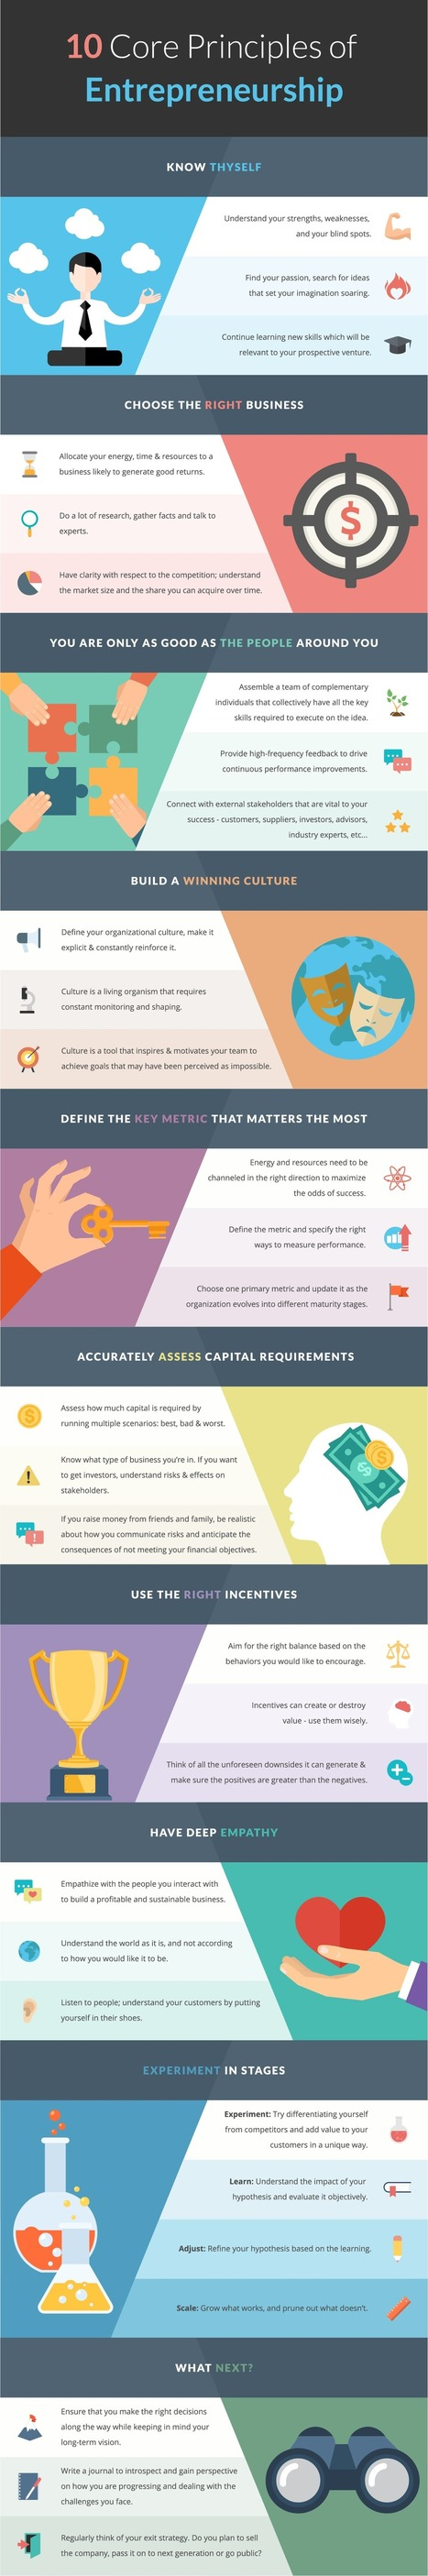 10 Core Principles of Entrepreneurship Infographic - e-Learning Infographics | Education for Sustainable Development | Scoop.it